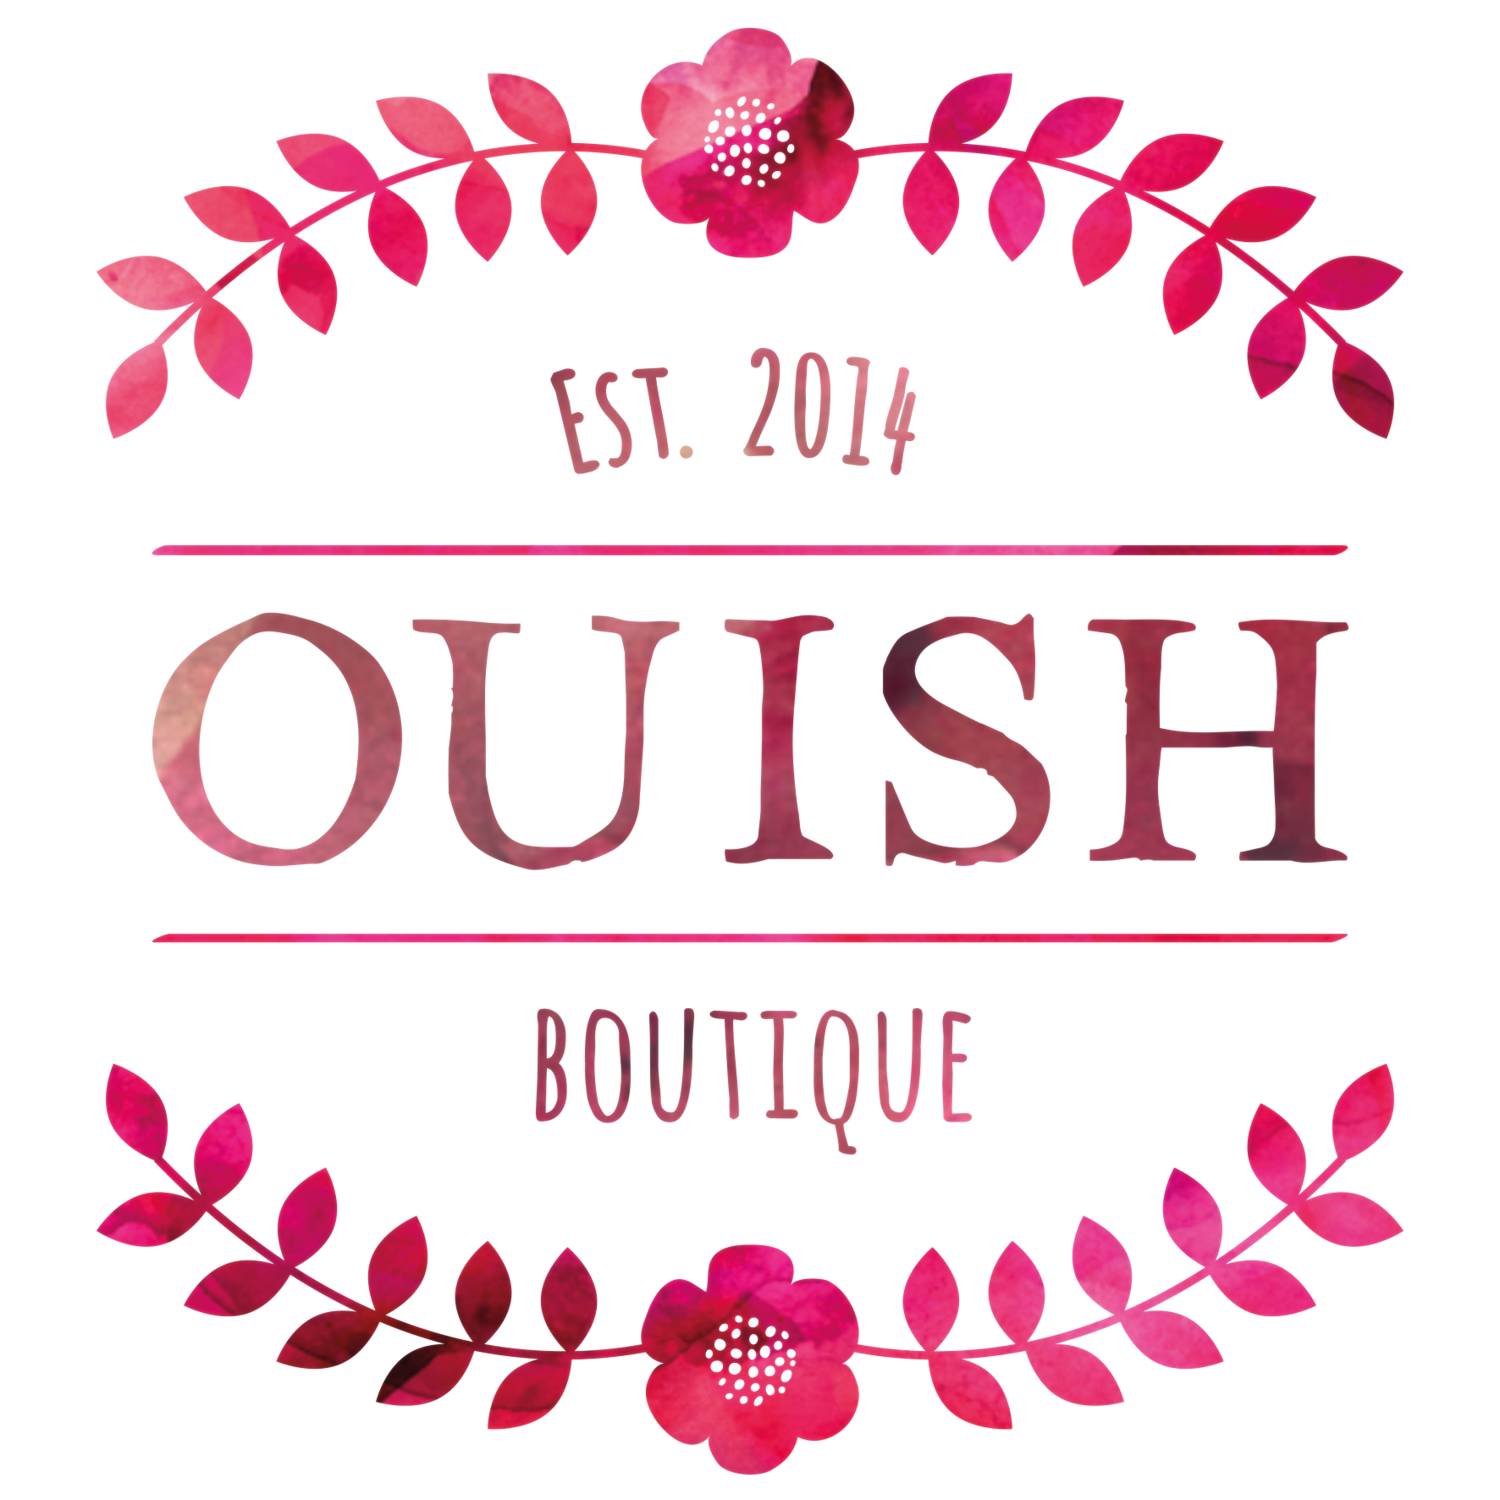 Introducing Ouish Boutique